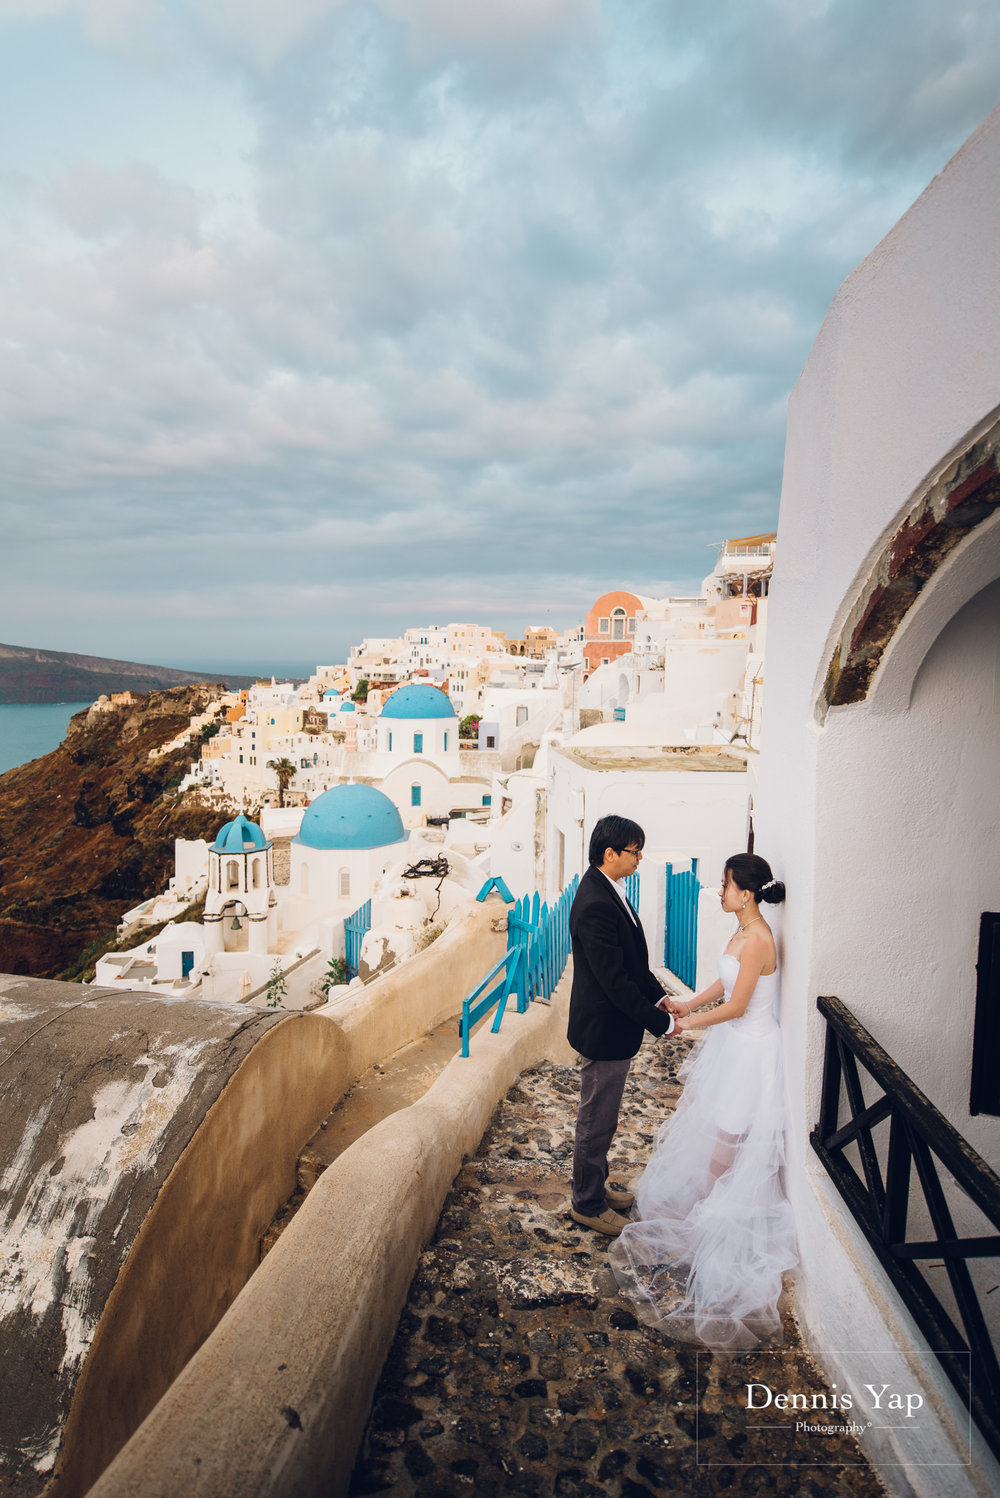 paul vanessa pre wedding santorini greece blue dog when i say i do dennis yap photography europe tour-10.jpg